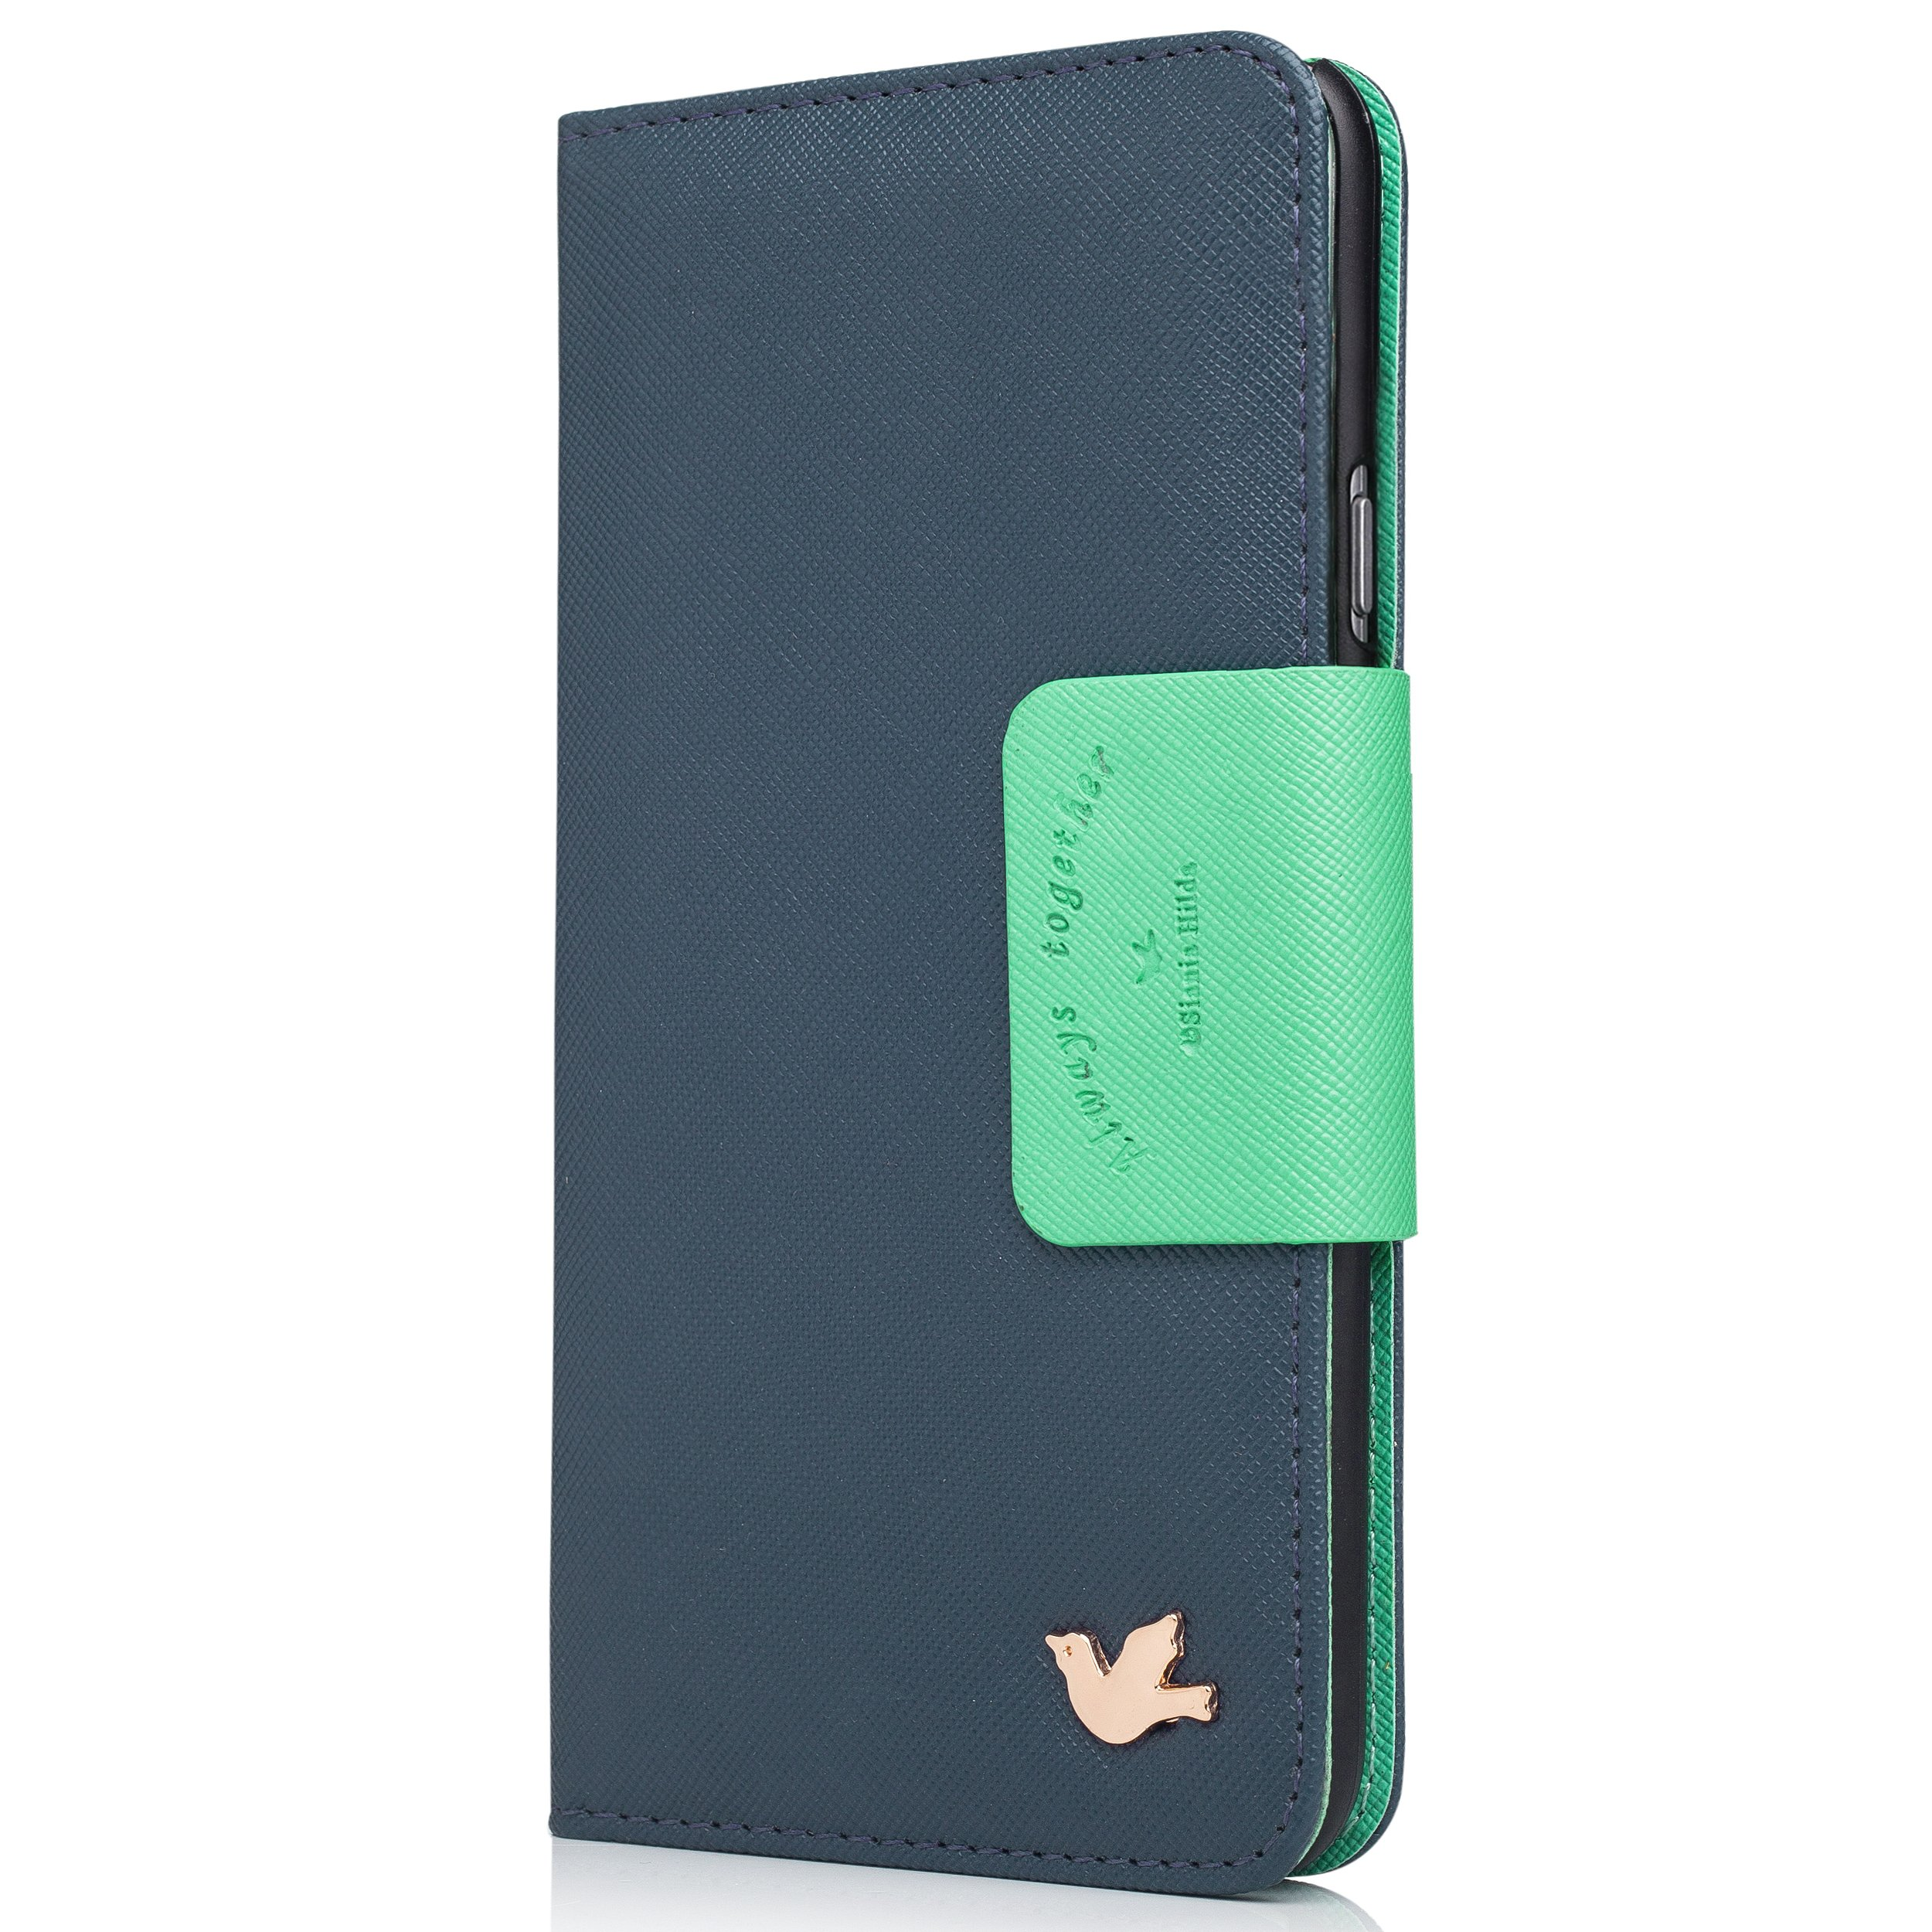 iPhone 6 Case,(4.7),[Upgraded-Opened Volume and Power Button Ports,no Break Issues] by HiLDA,Wallet Case,PU Leather Case,Credit Card Holder,Flip Cover Skin[Blue]